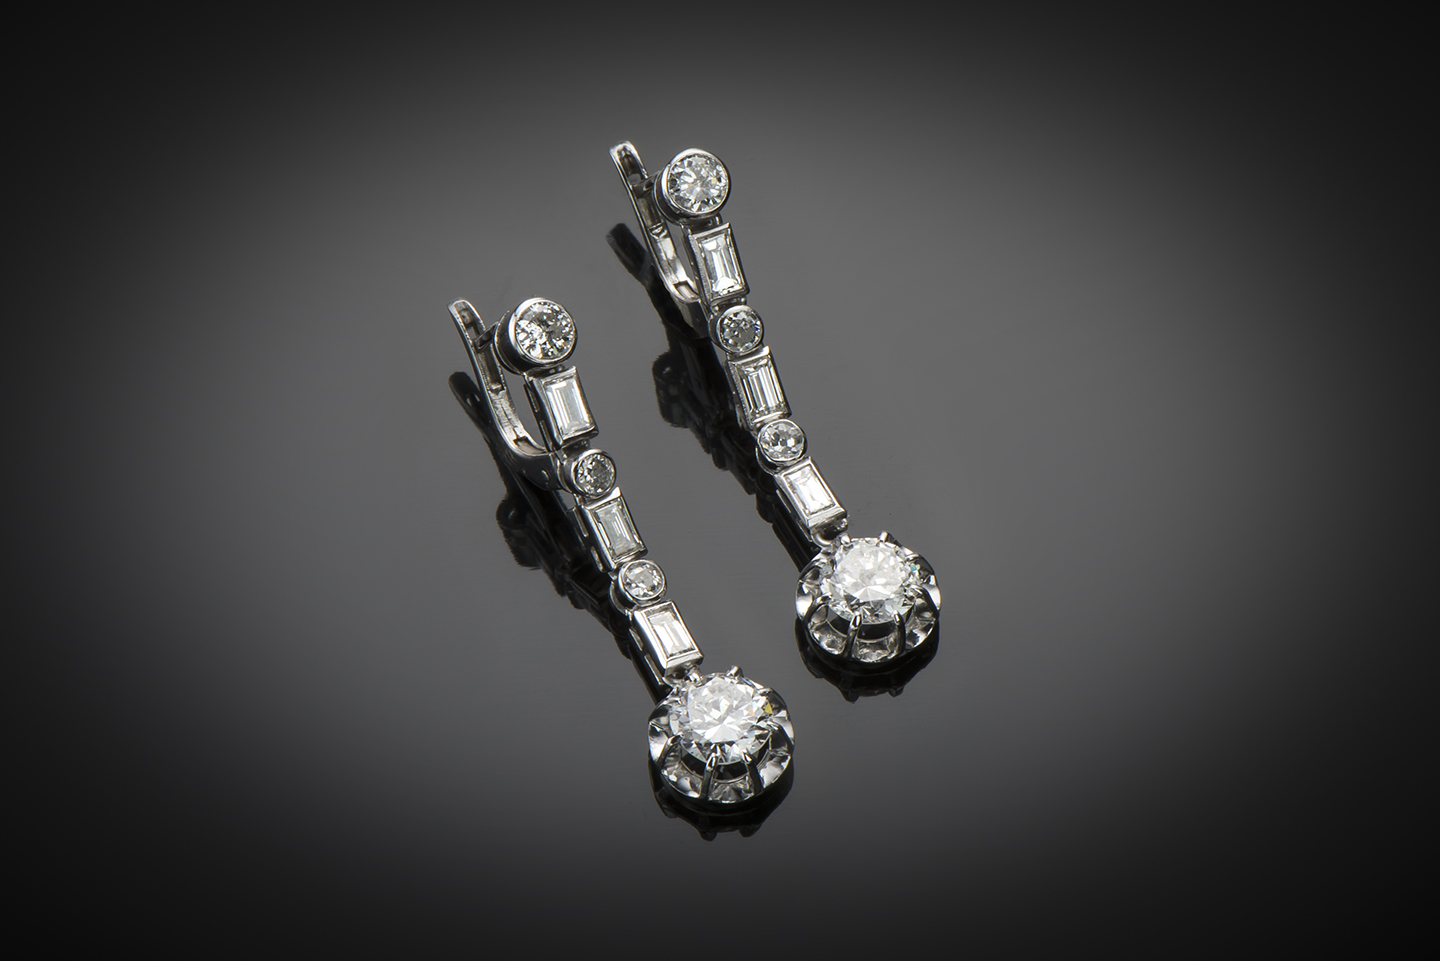 Pendants d'oreilles diamants (3,20 carats) vers 1935-1